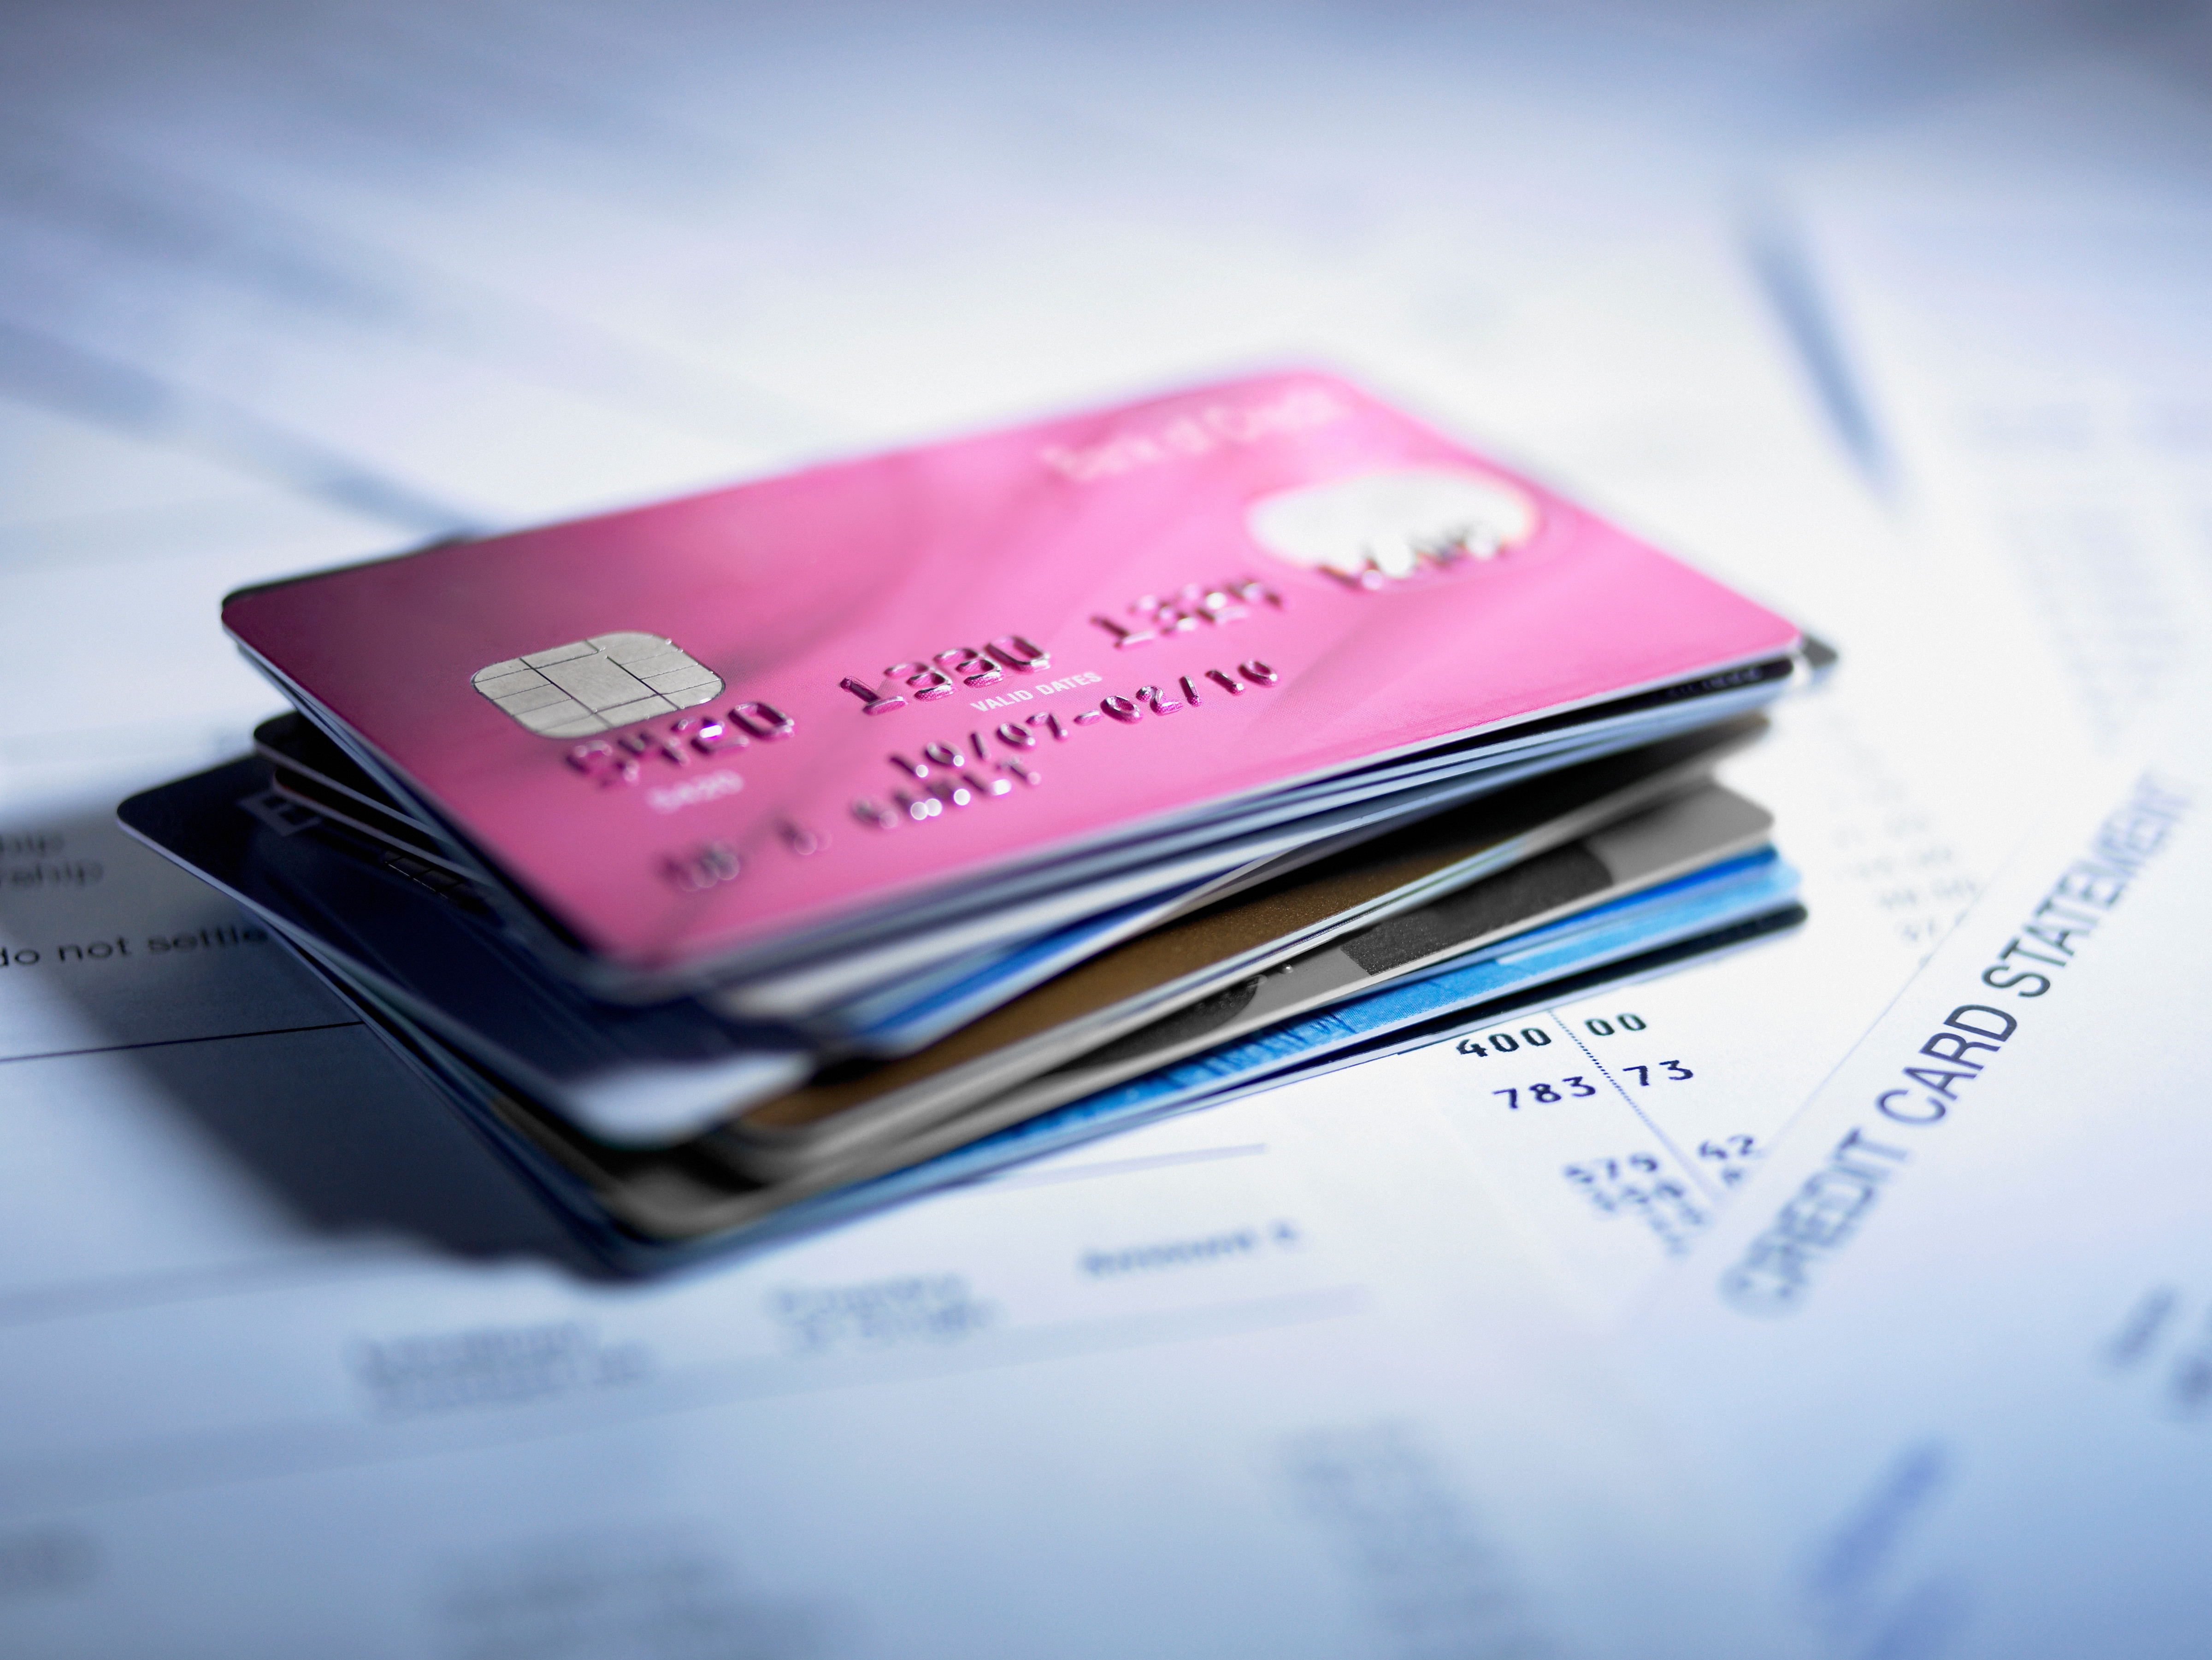 I have had to pay off my ex-wife's debt